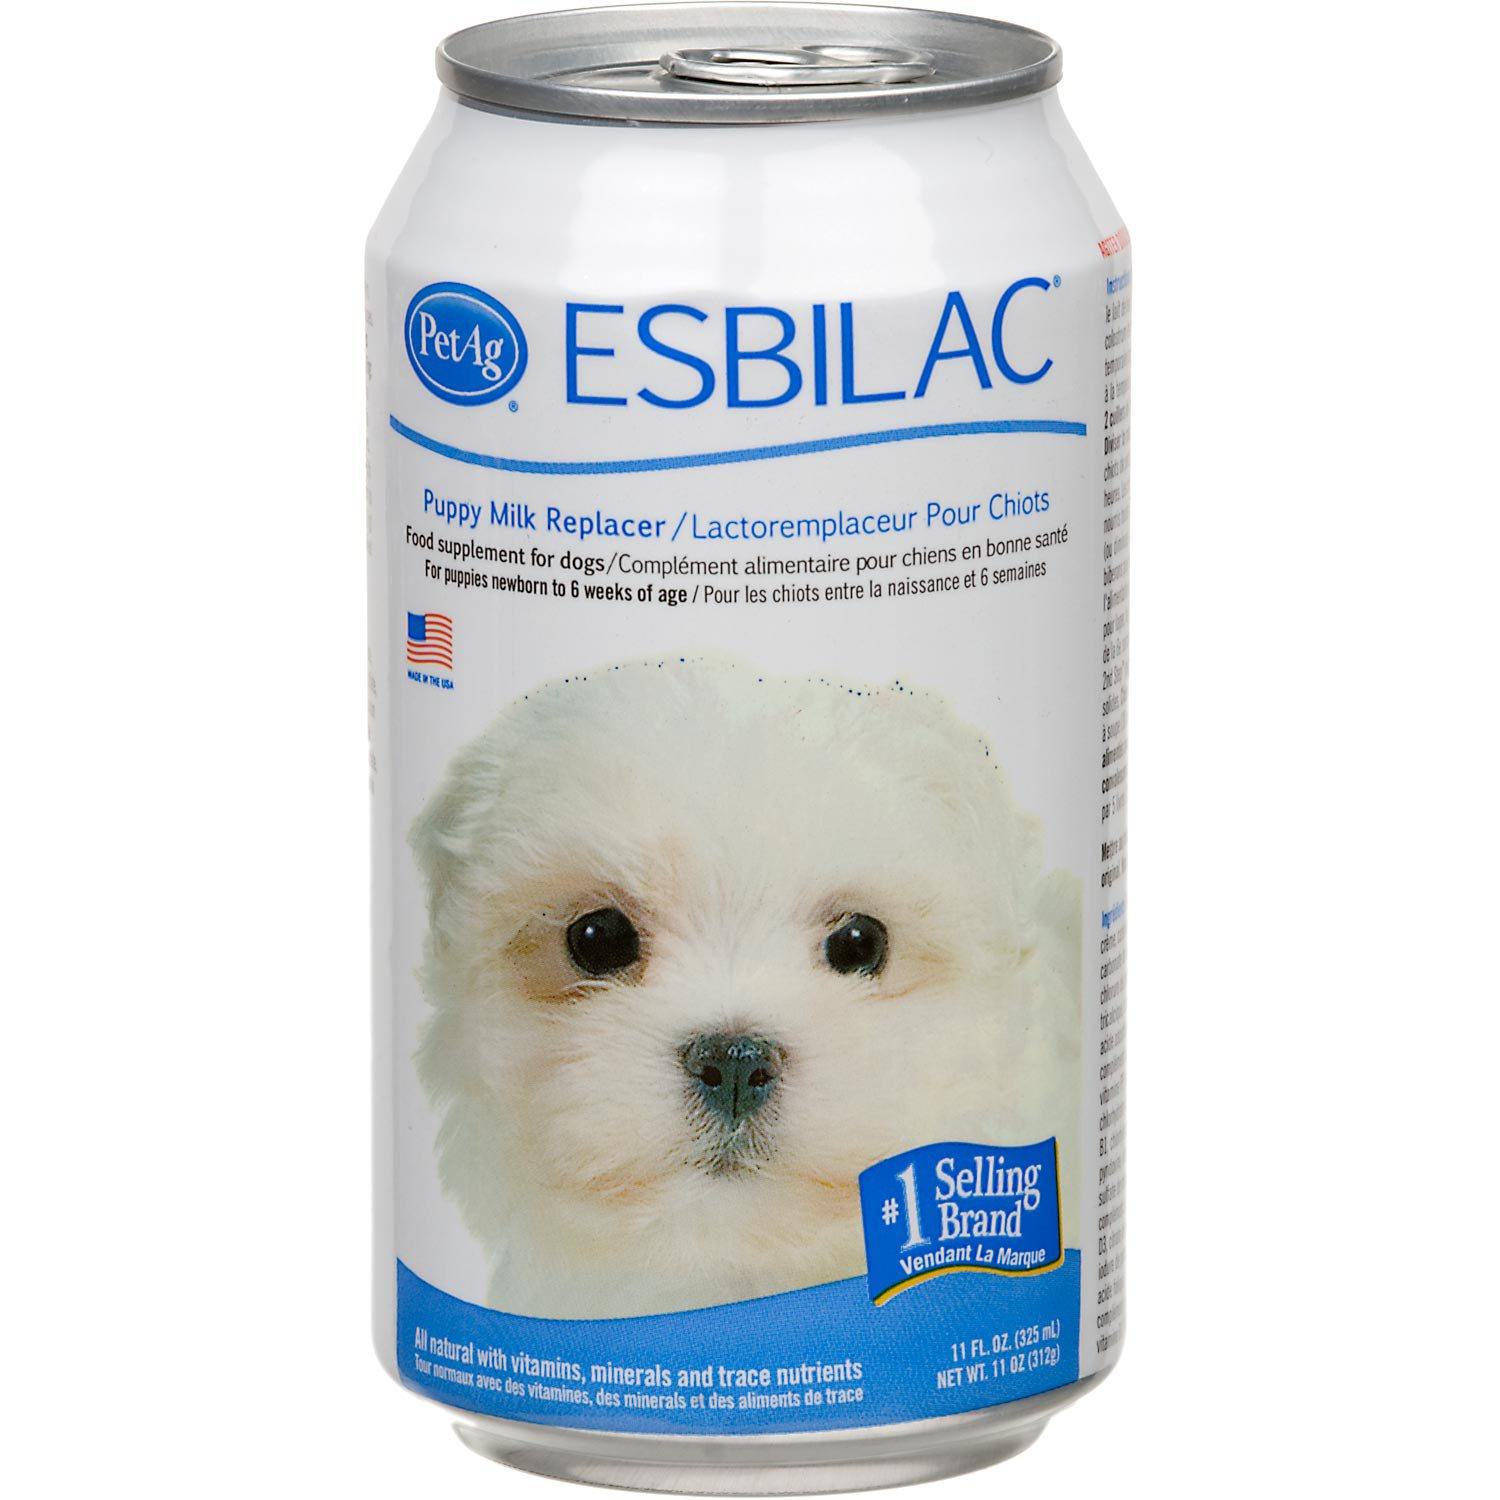 PetAg Esbilac Milk Replacer Food Supplement for Dogs & Small Animals